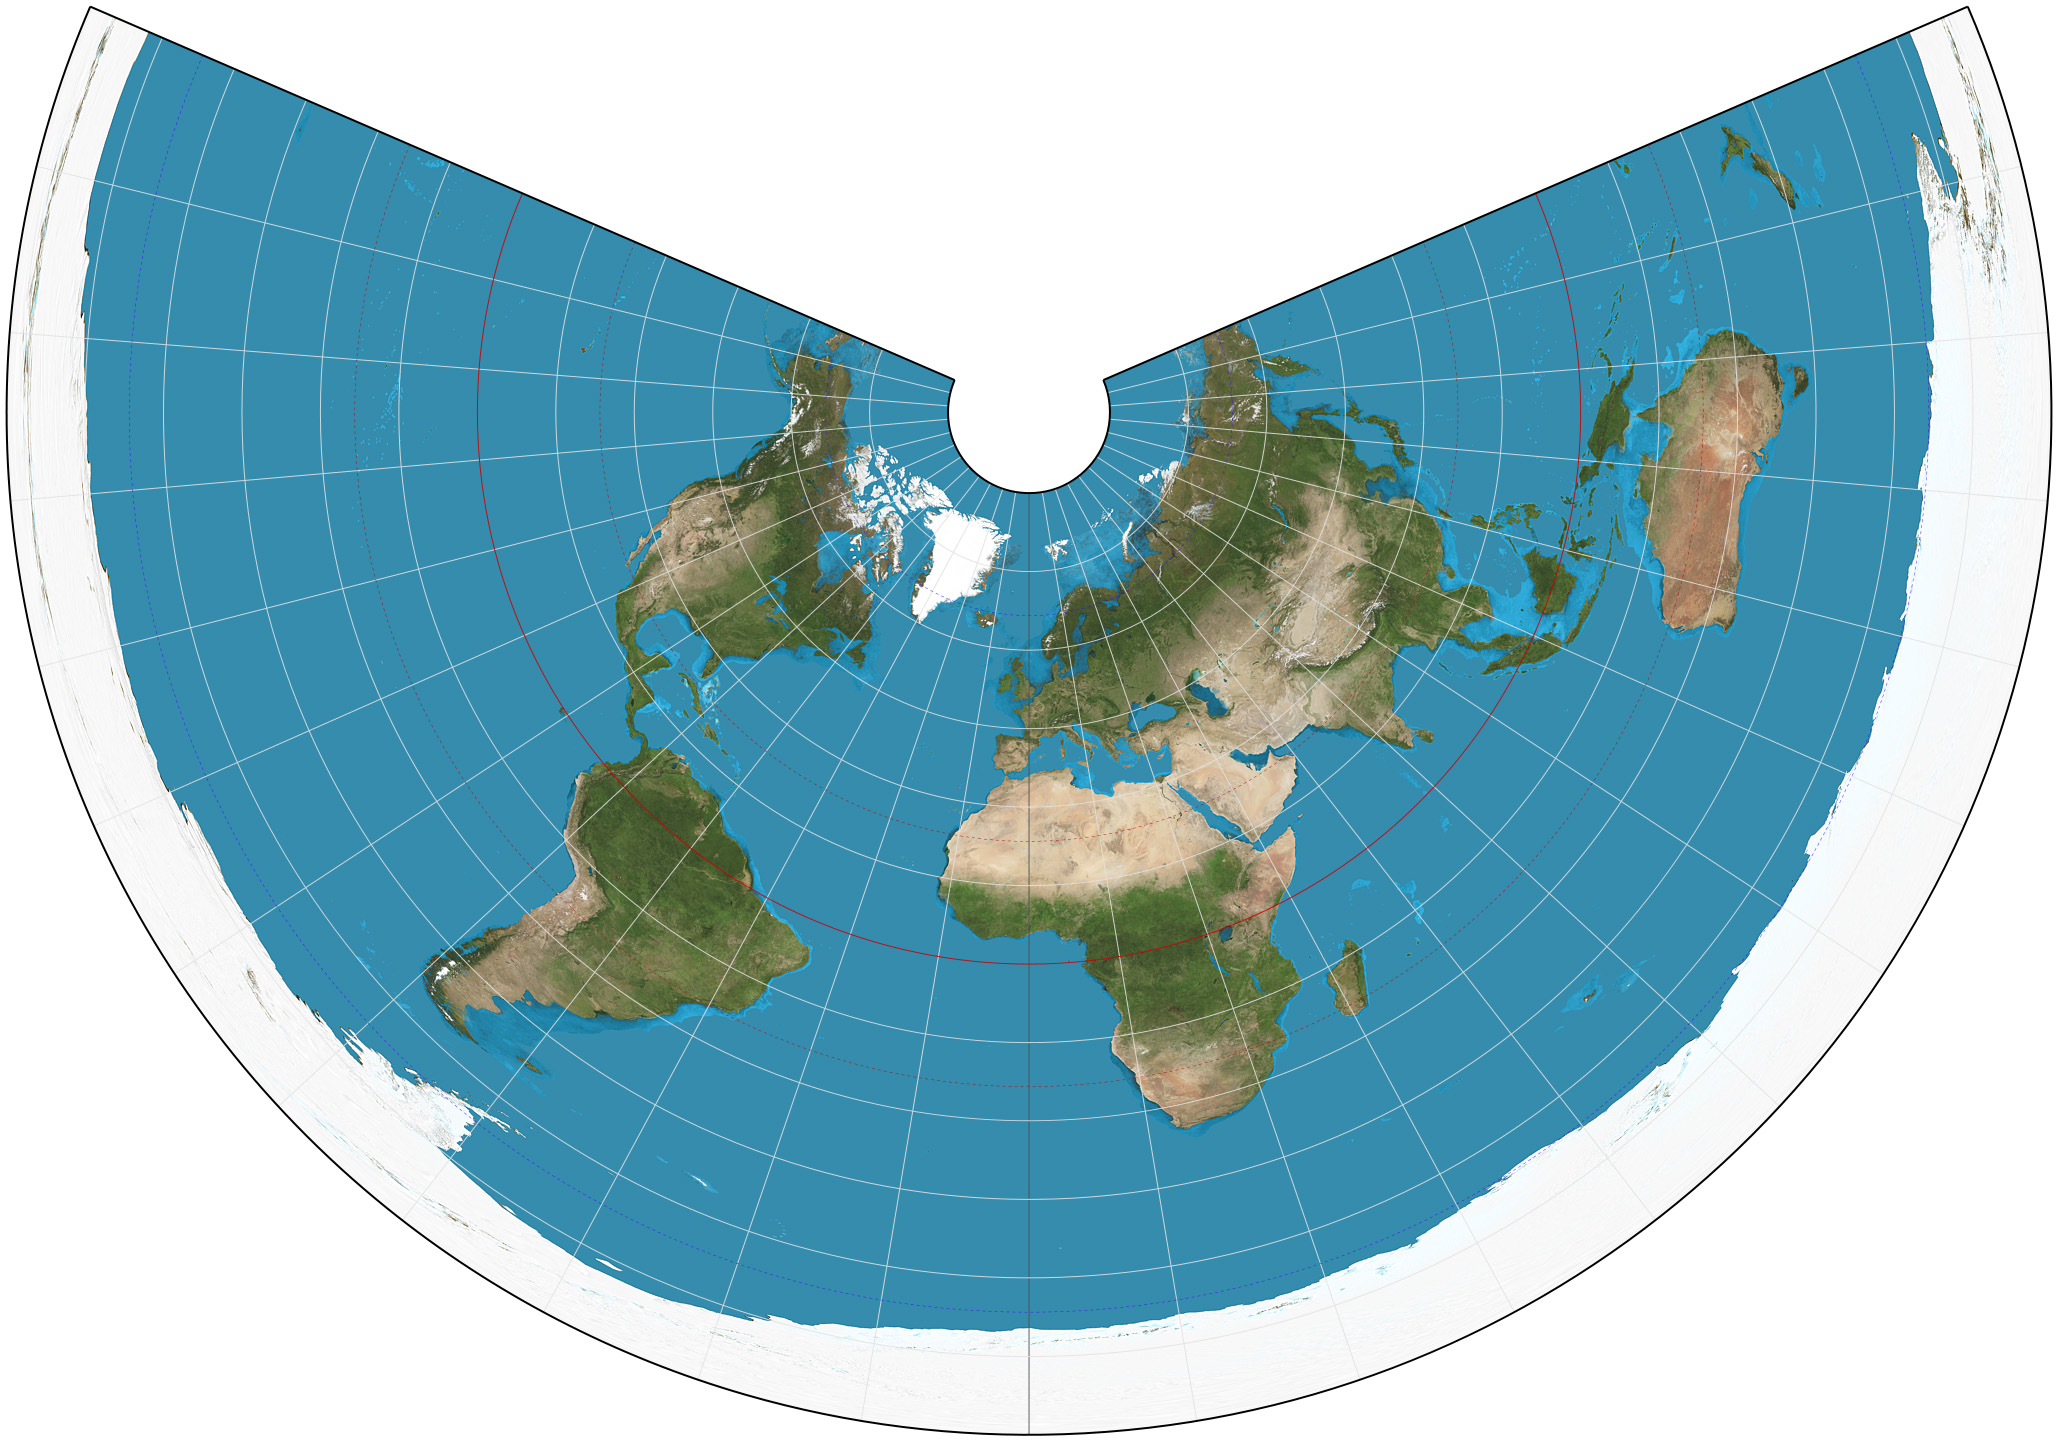 map projections used in south africa Equidistant Conic Projection Wikipedia map projections used in south africa